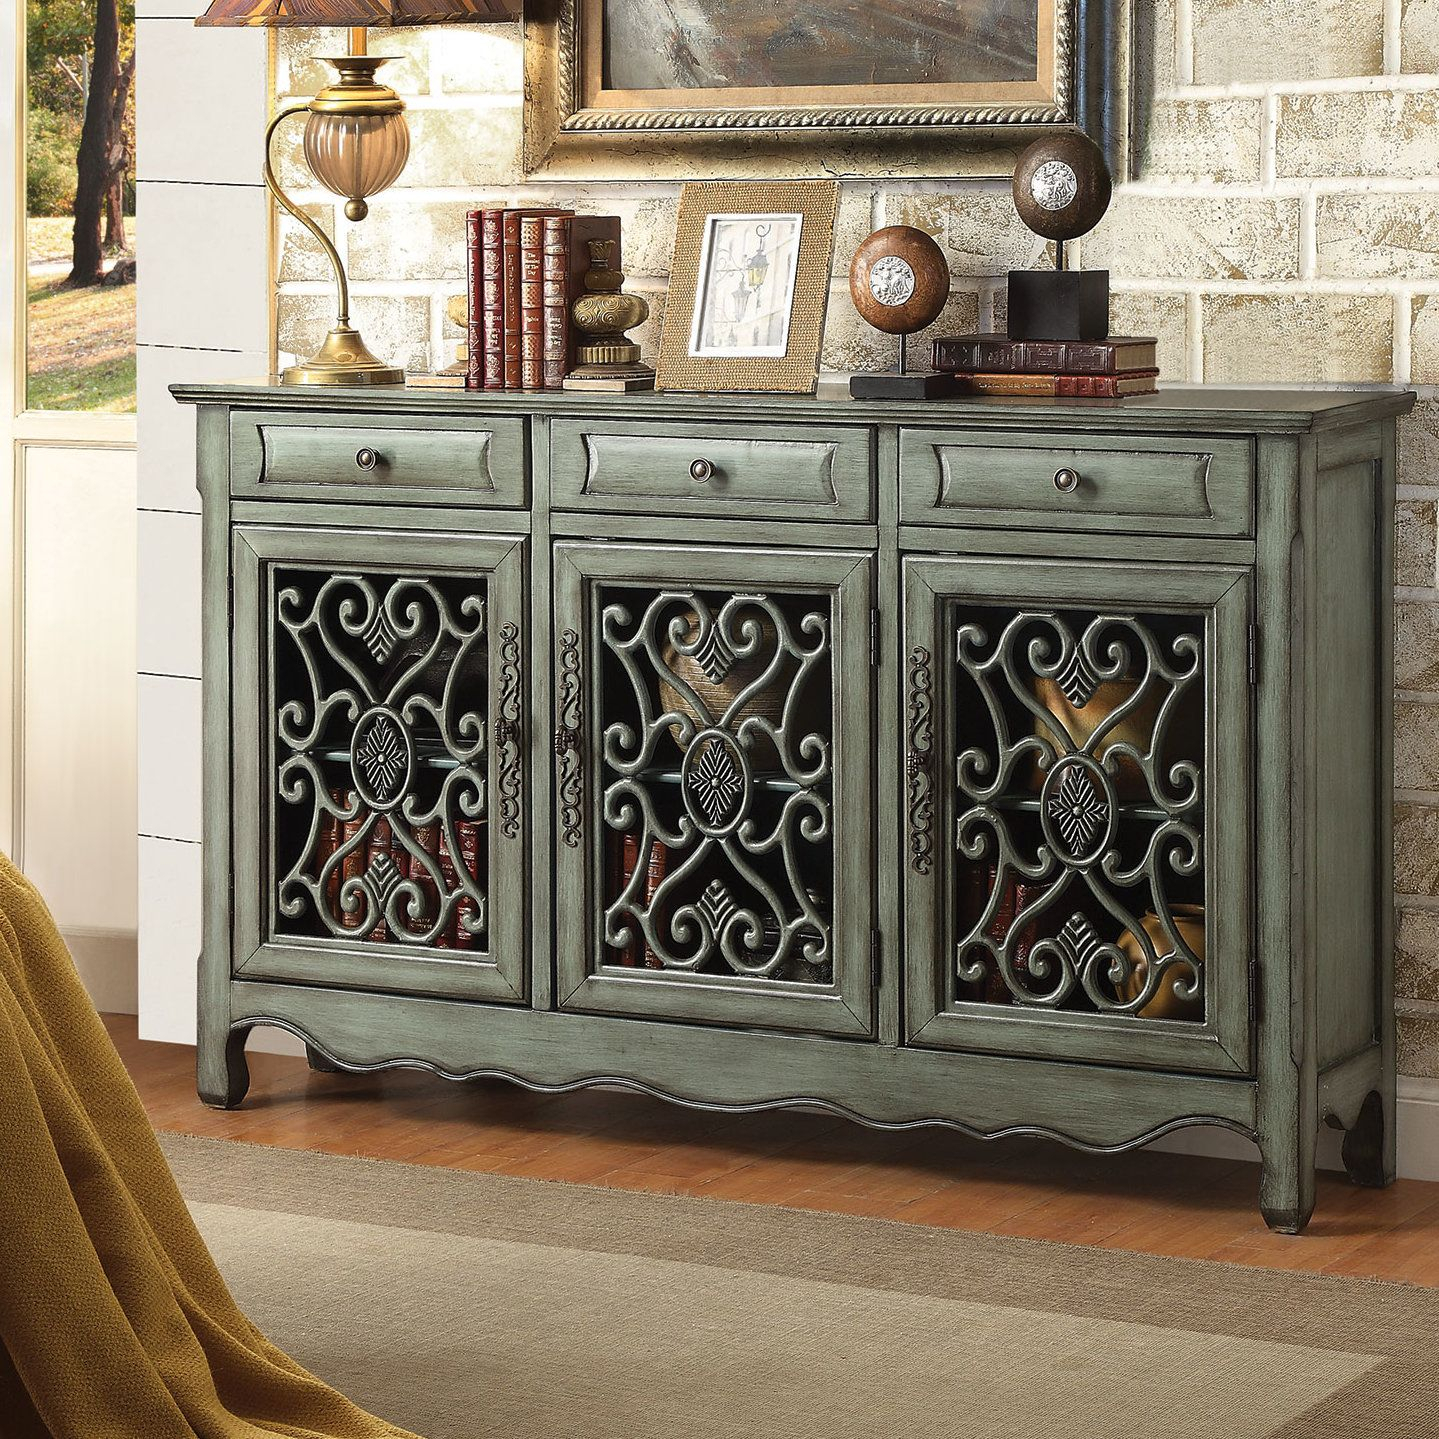 Helvic 3 Drawer 3 Door Accent Cabinet | Farmhouse Furniture intended for Mauzy Sideboards (Image 11 of 30)